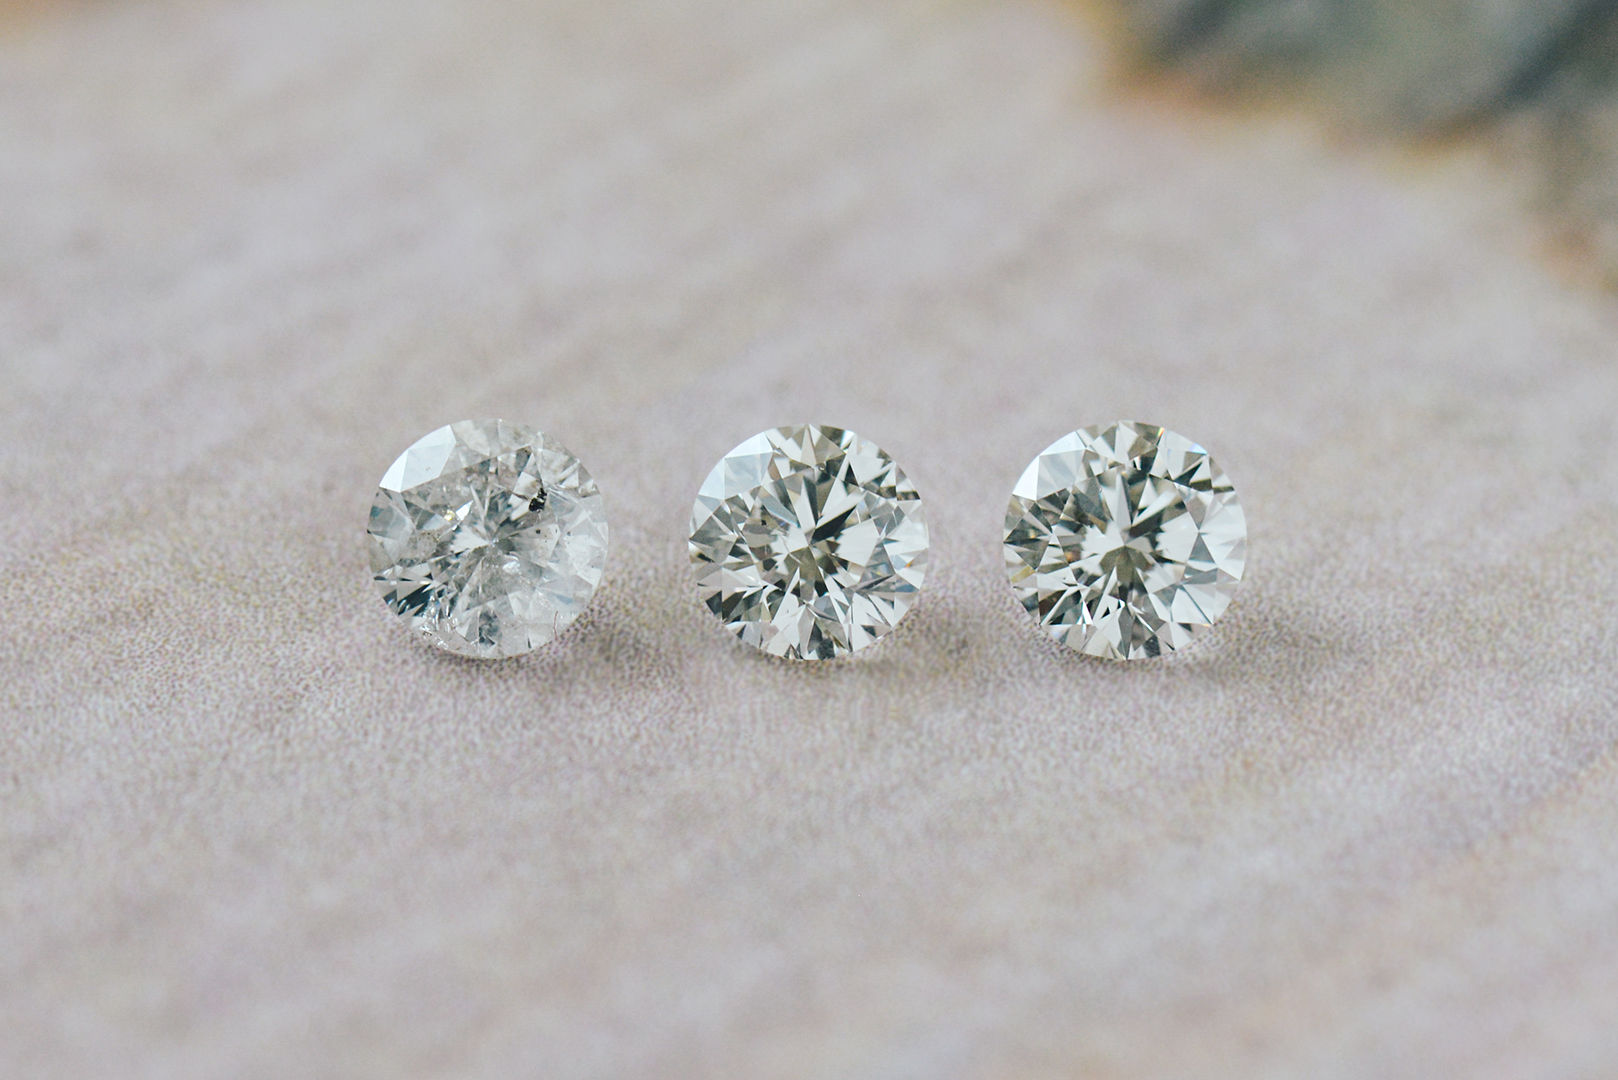 round diamond clarity comparison